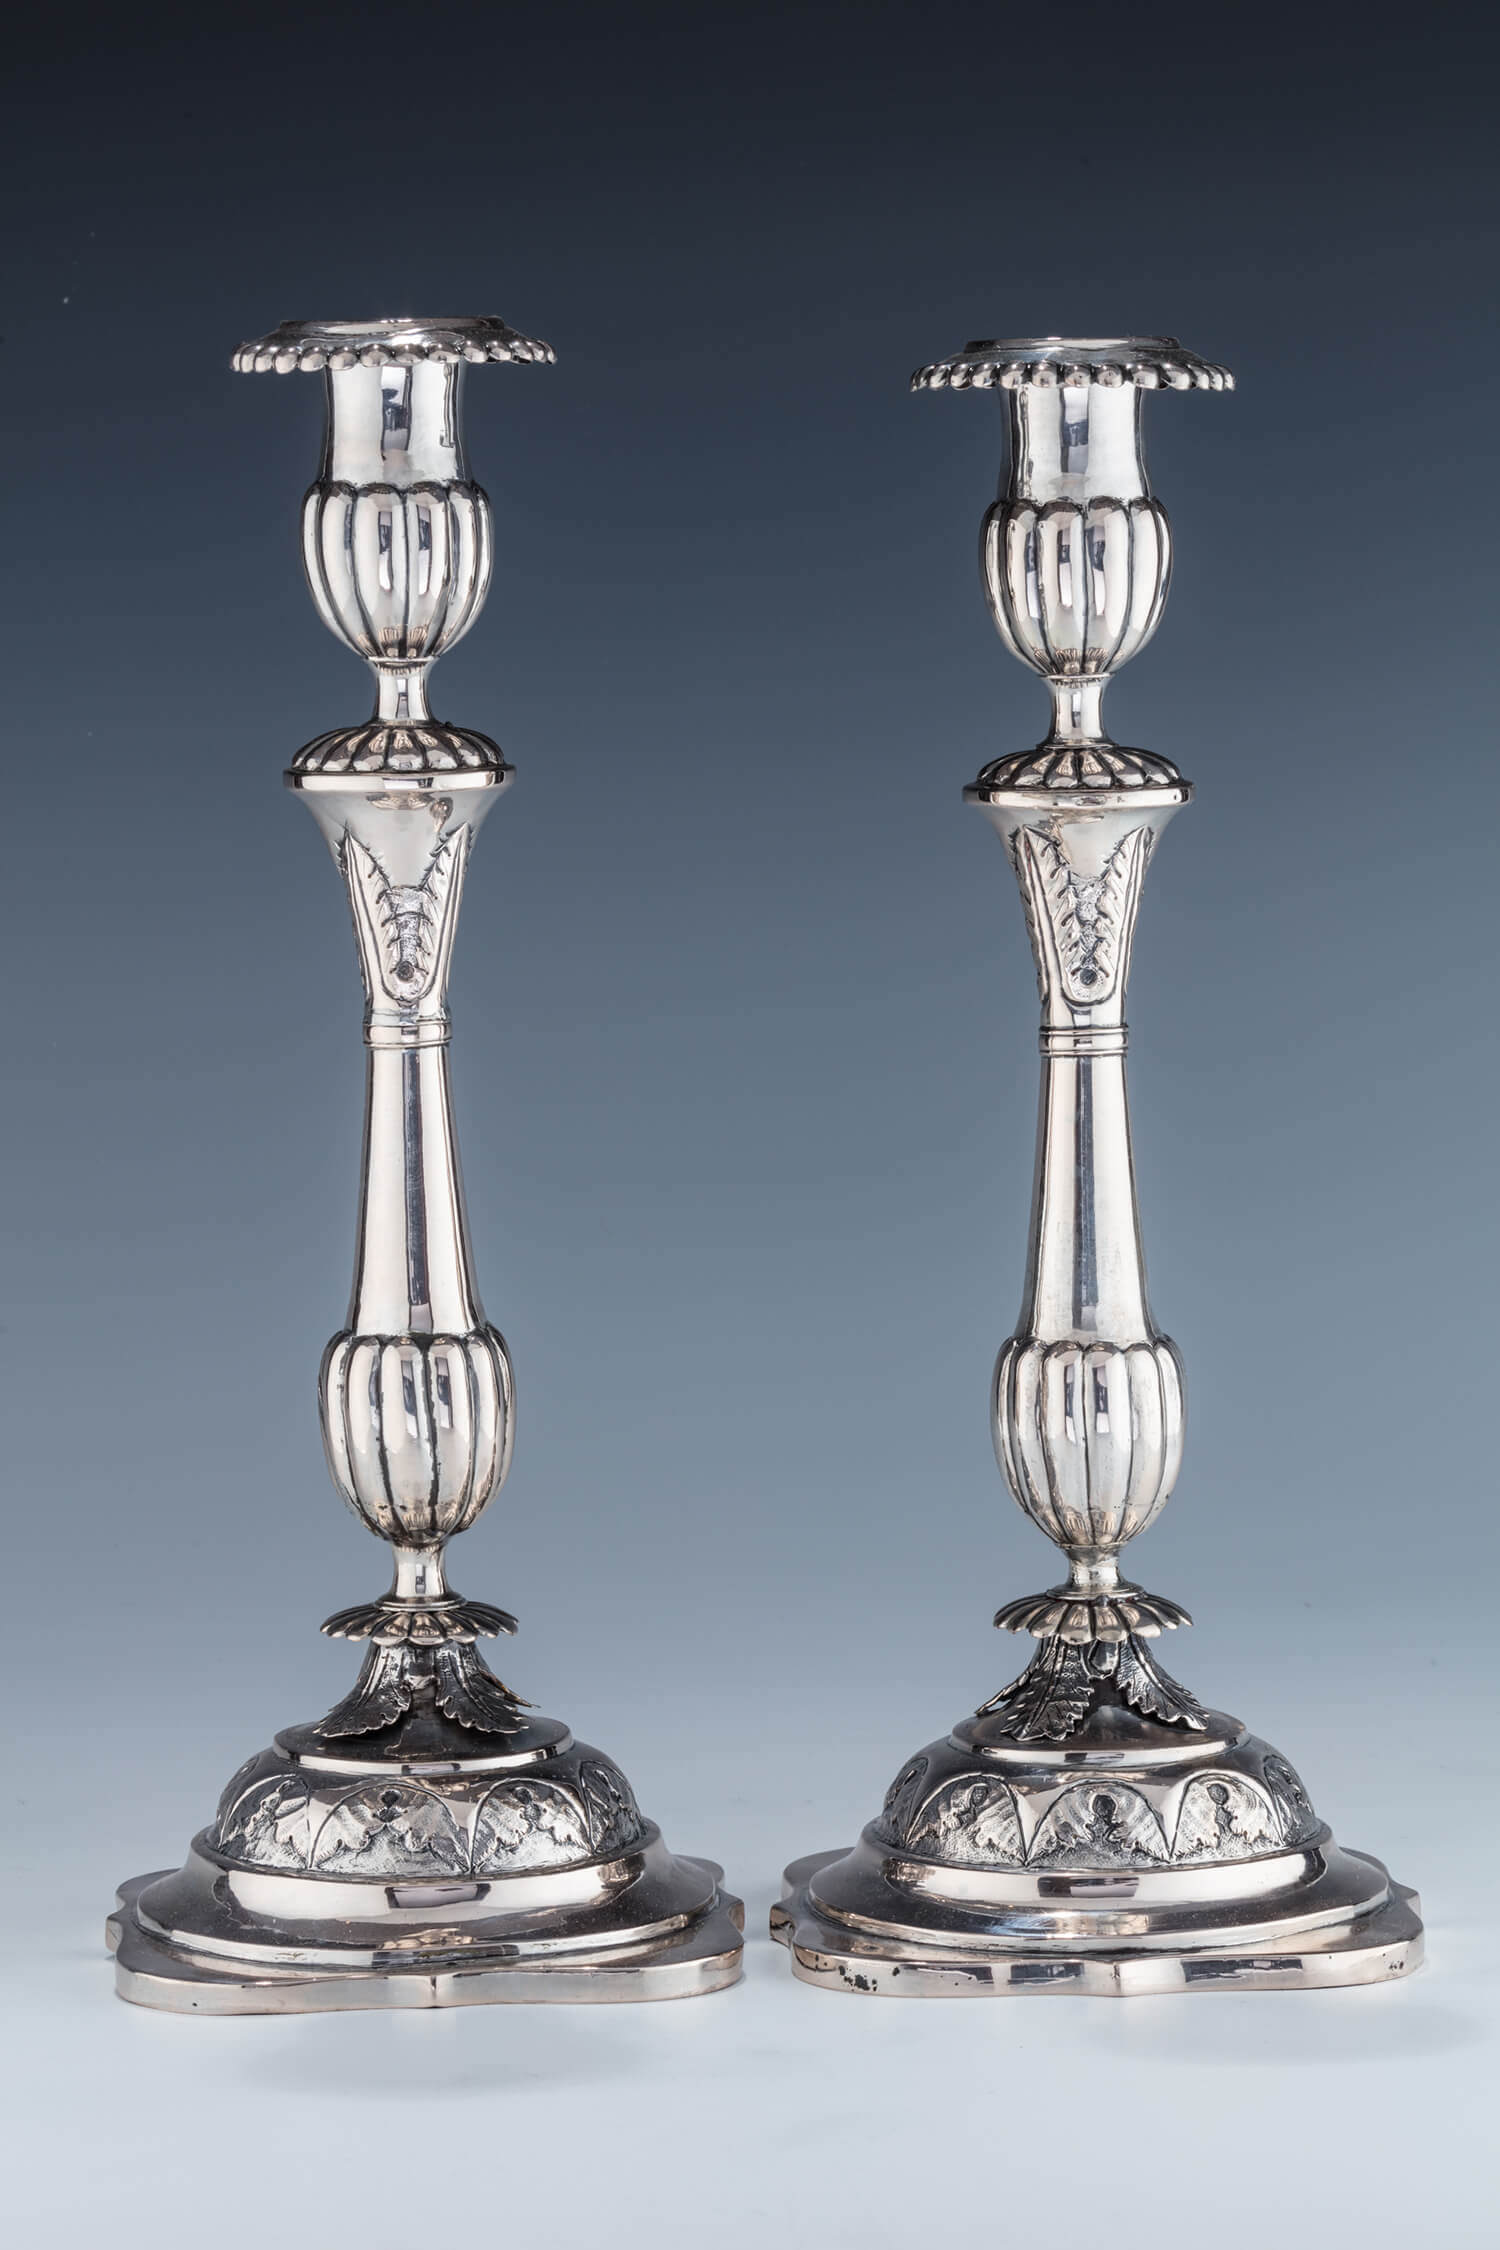 026. A MONUMENTAL PAIR OF EARLY POLISH SILVER SABBATH CANDLESTICKS